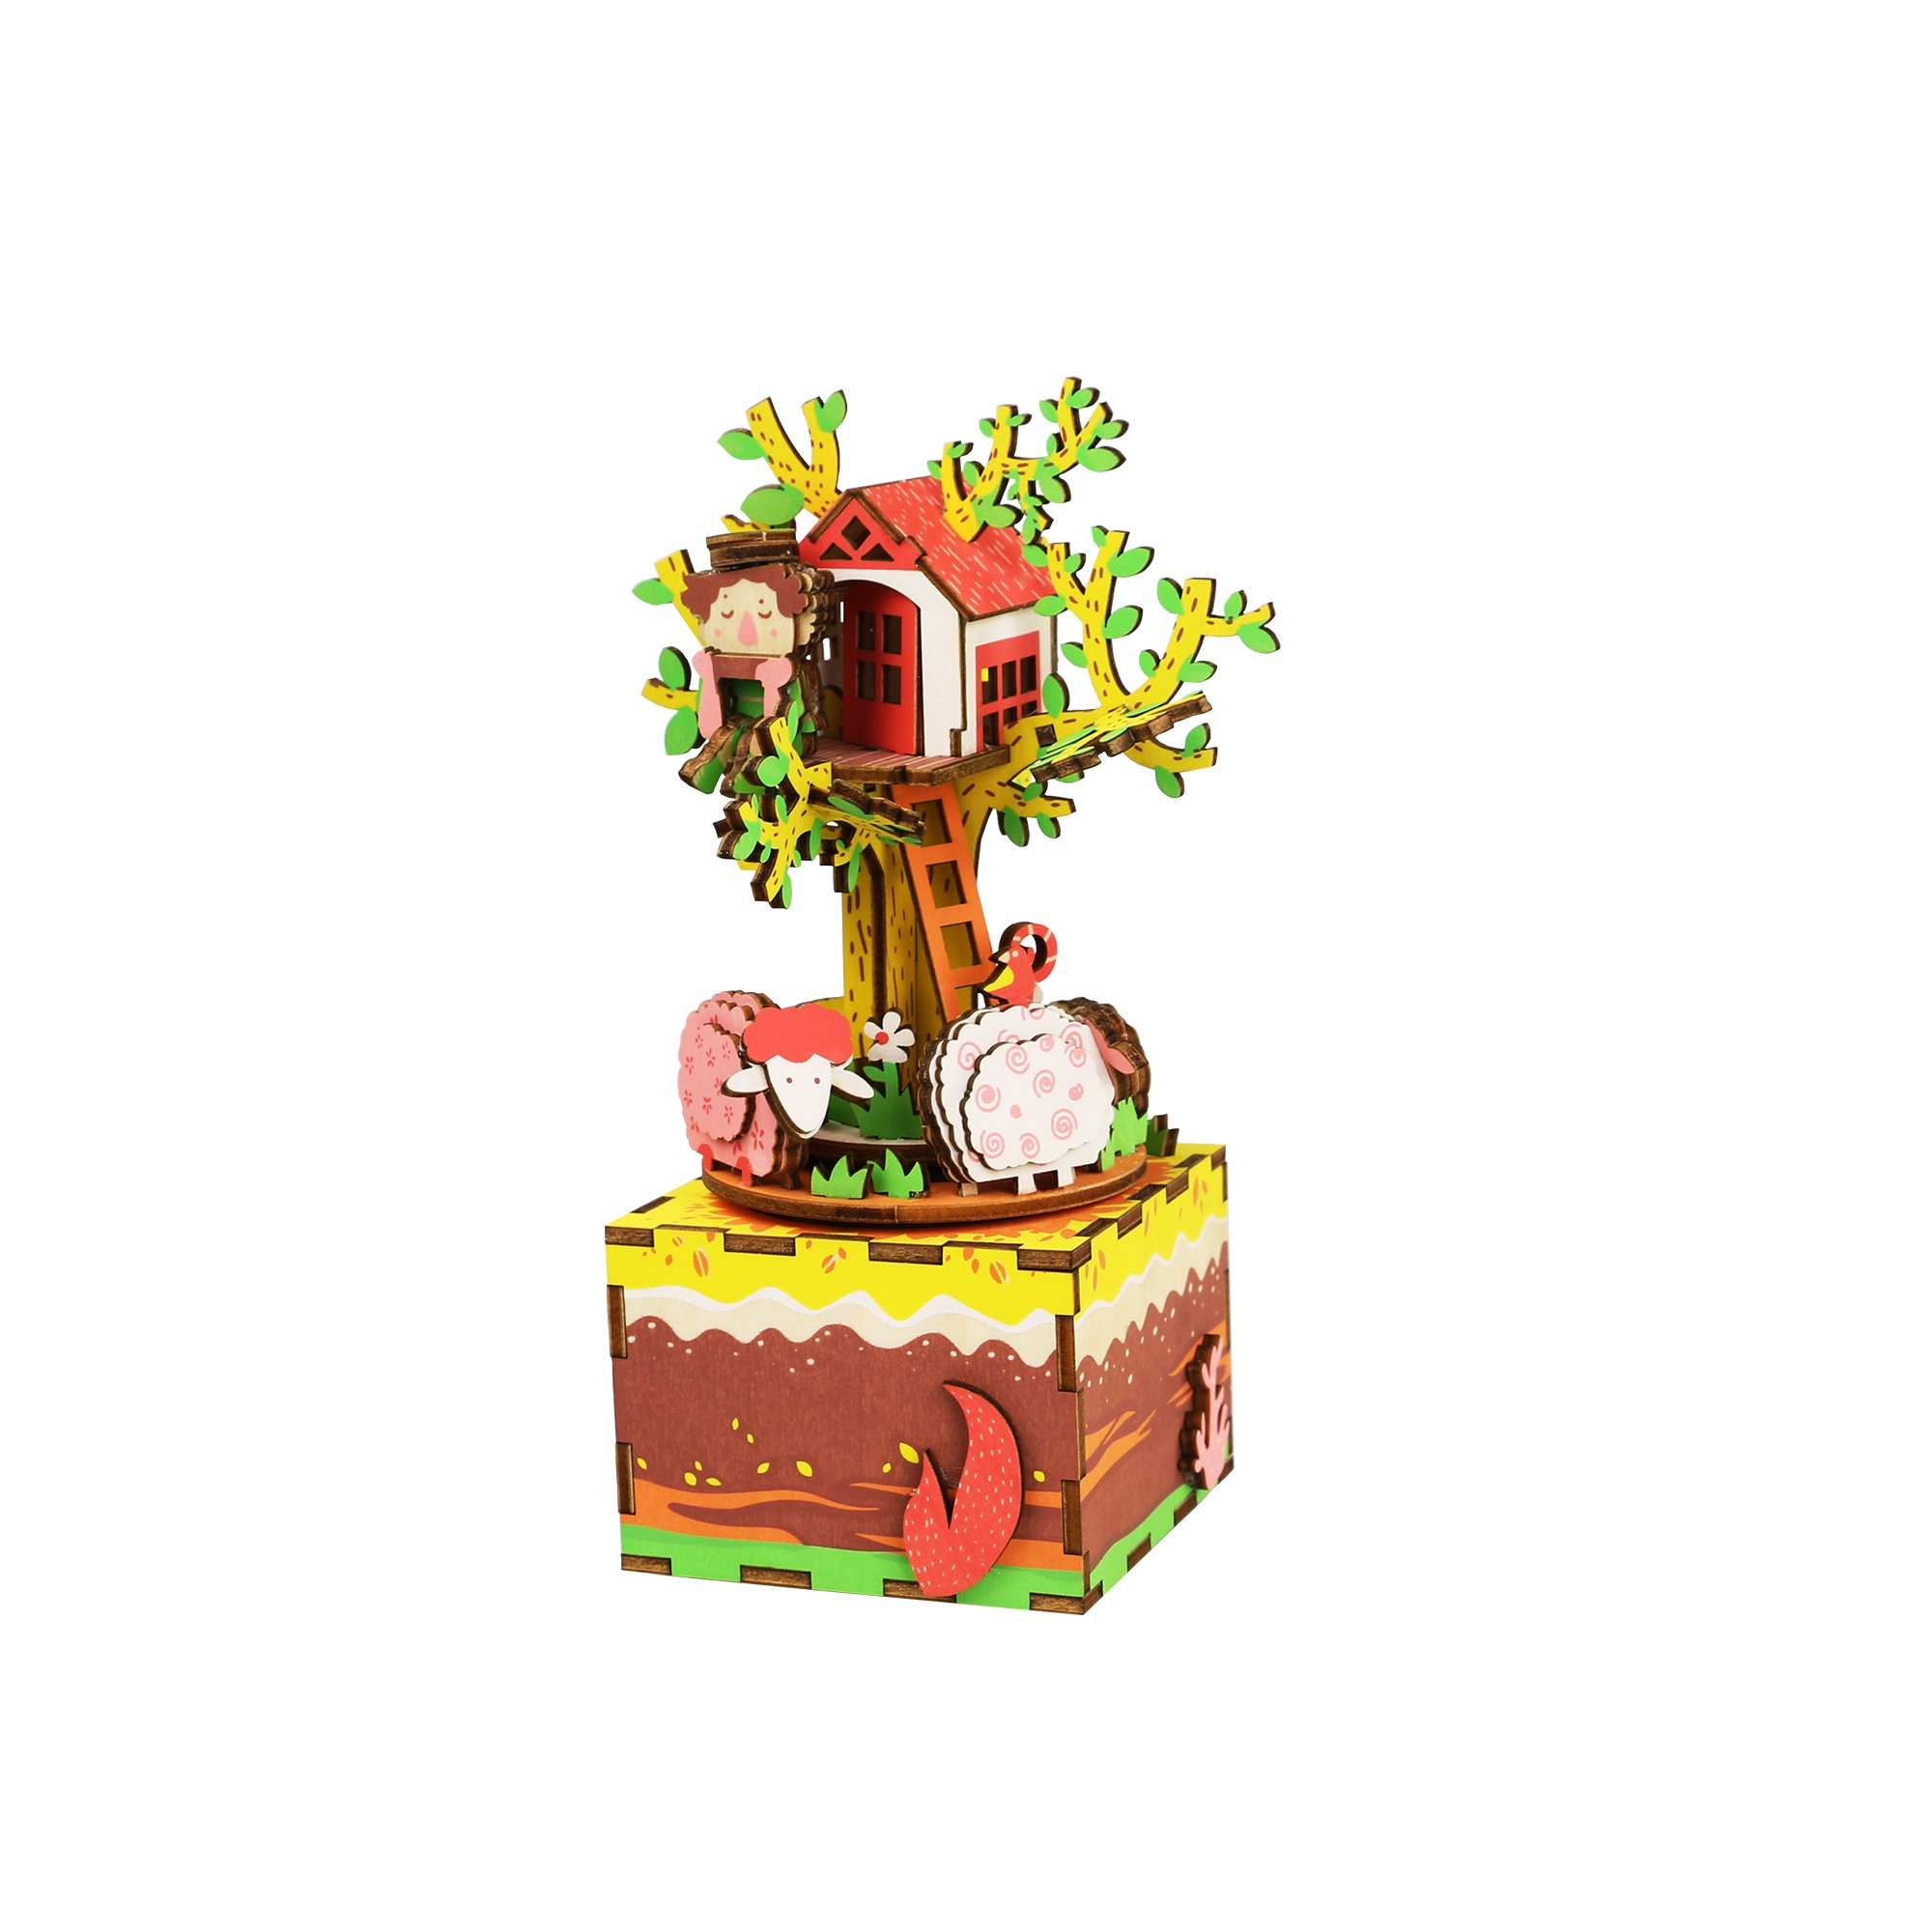 Hands Craft AM408 3D Wooden Puzzle-DIY Hand Crank Music Box-Tree House Educational Toy-Plays TALES FROM THE VIENNA WOODS- Perfect Gift for Christmas, Birthday, Baby Shower, Valentines, Mother's Day.